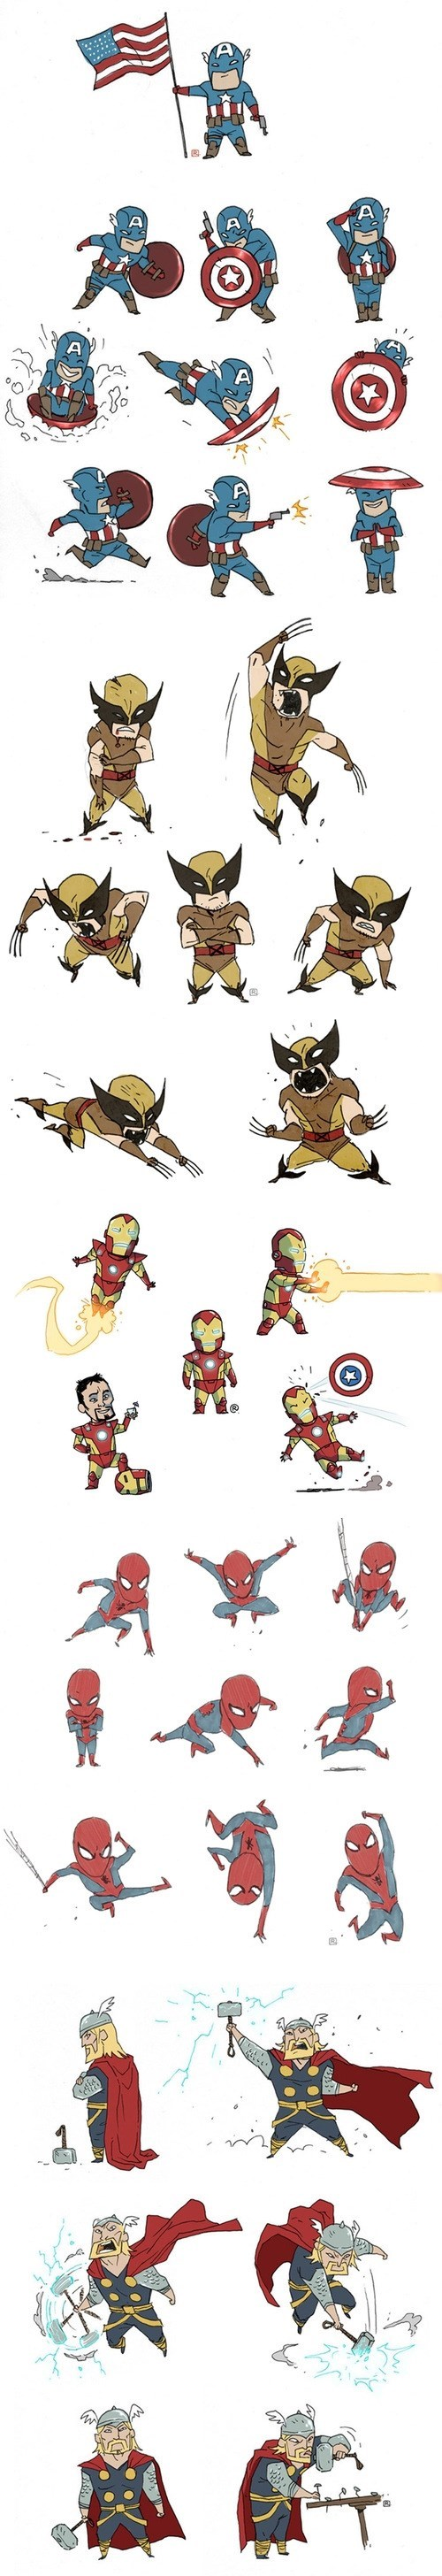 Fan Art chibi avengers - 8212314624